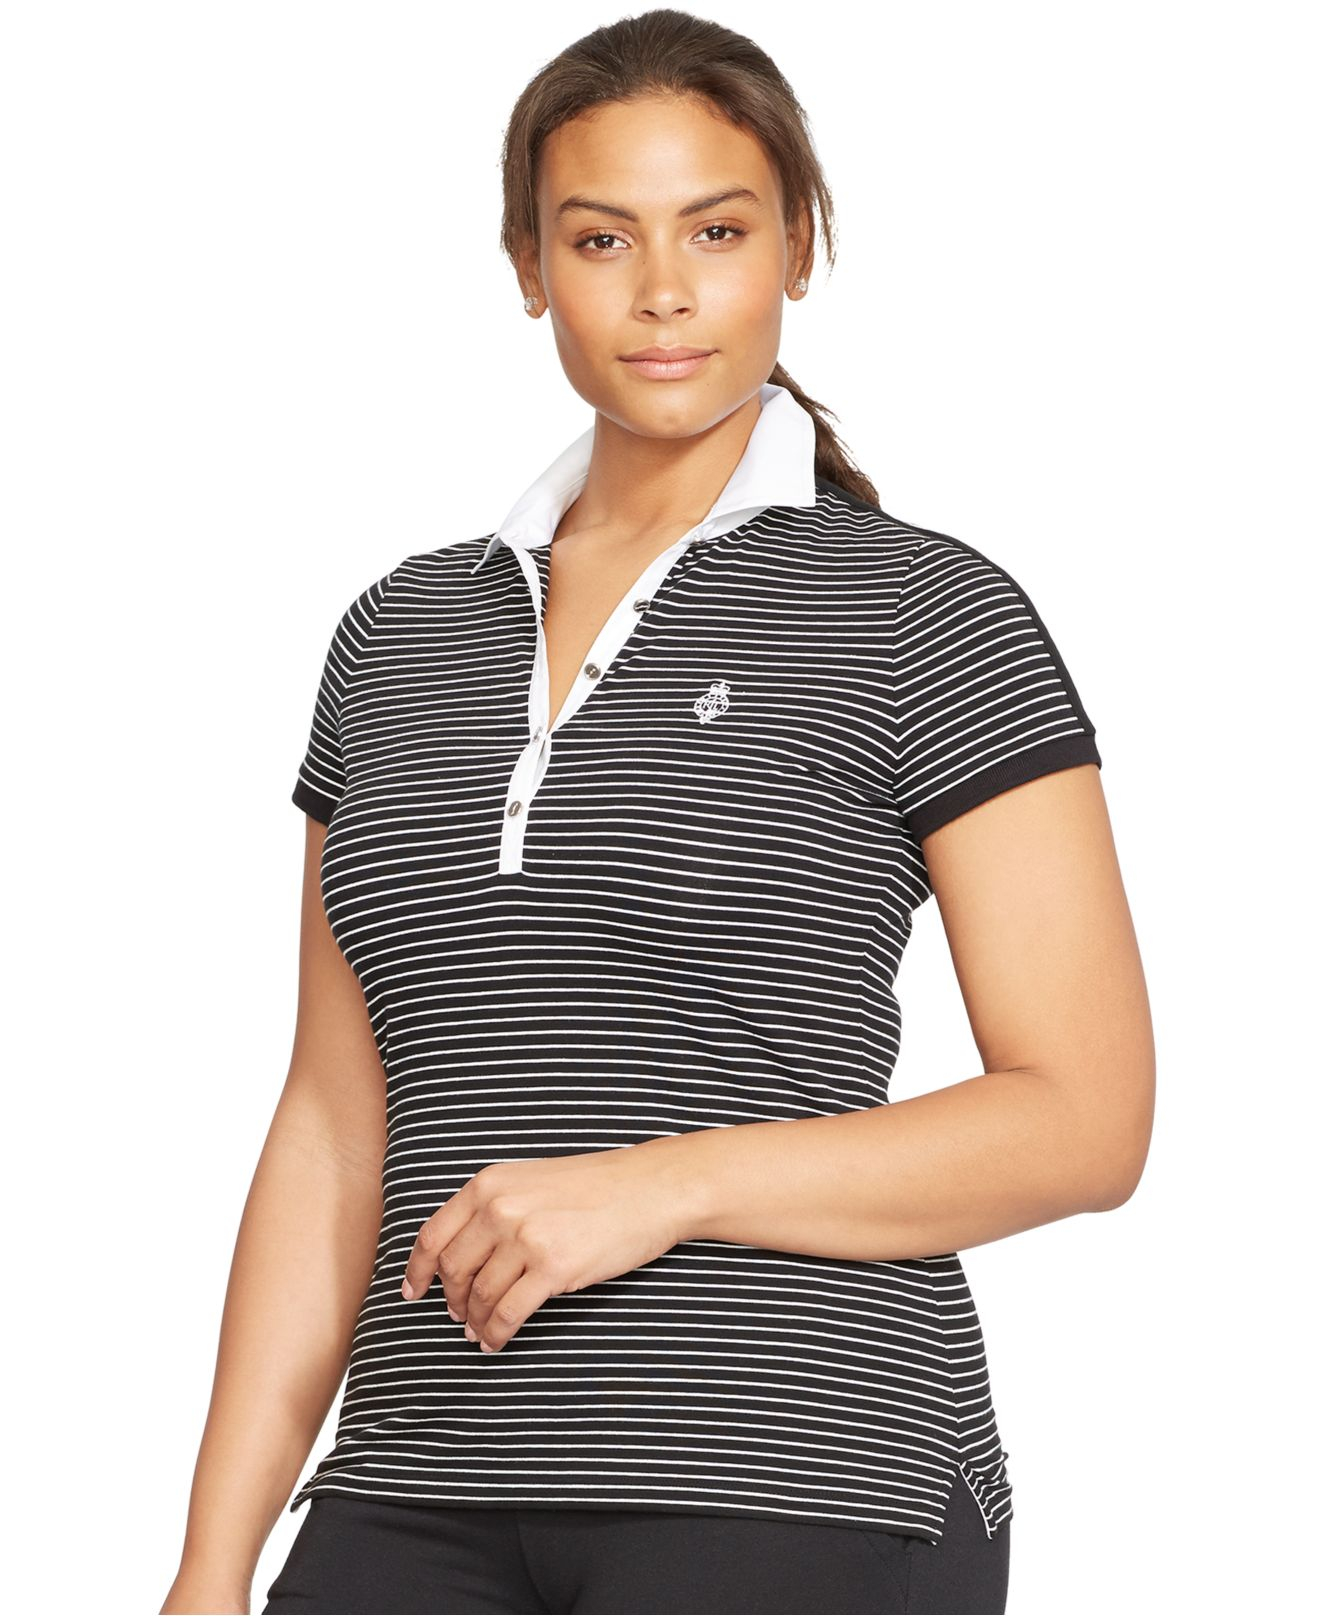 Lyst lauren by ralph lauren plus size striped polo shirt for Plus size golf polo shirts